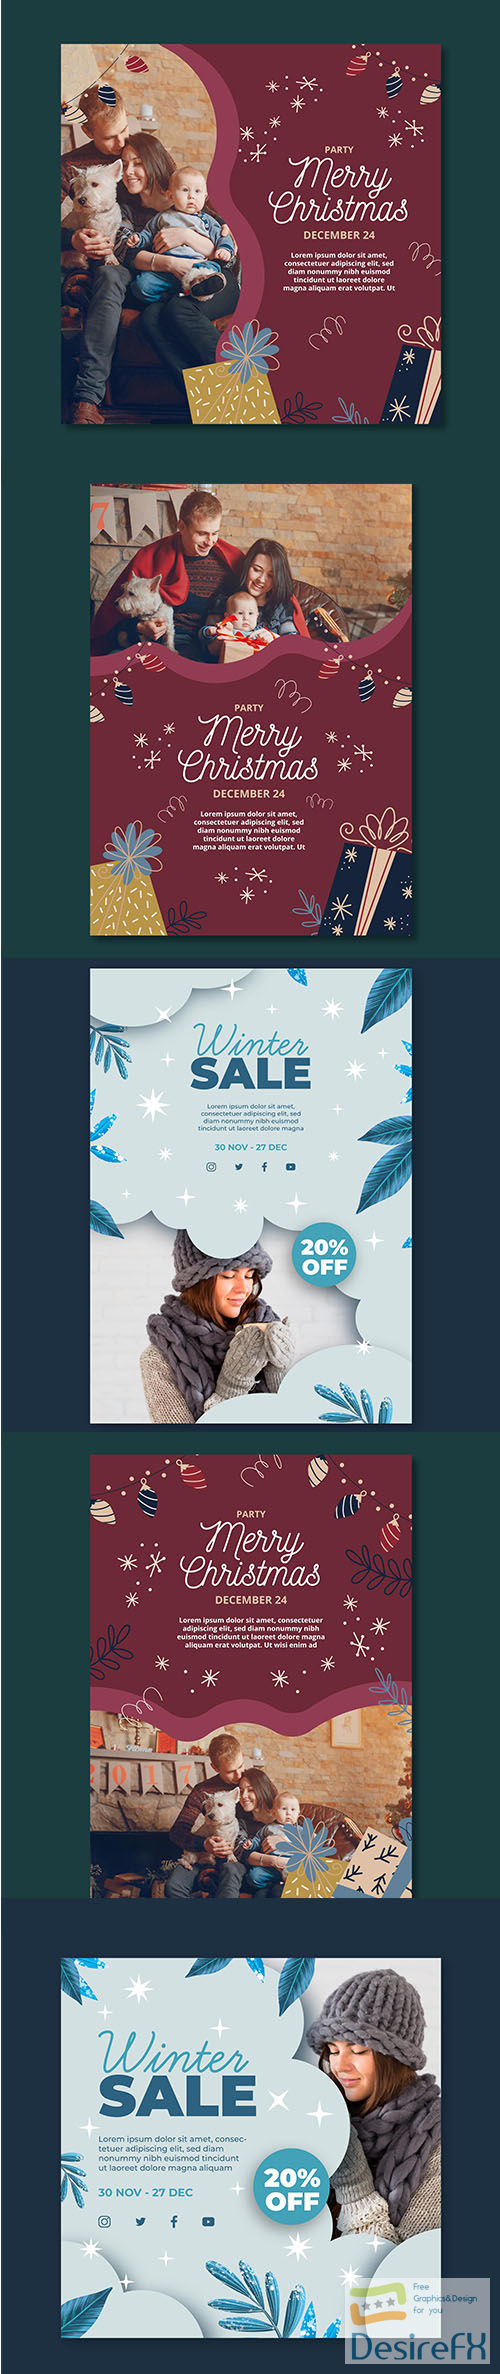 Winter Christmas Flyer Template Set